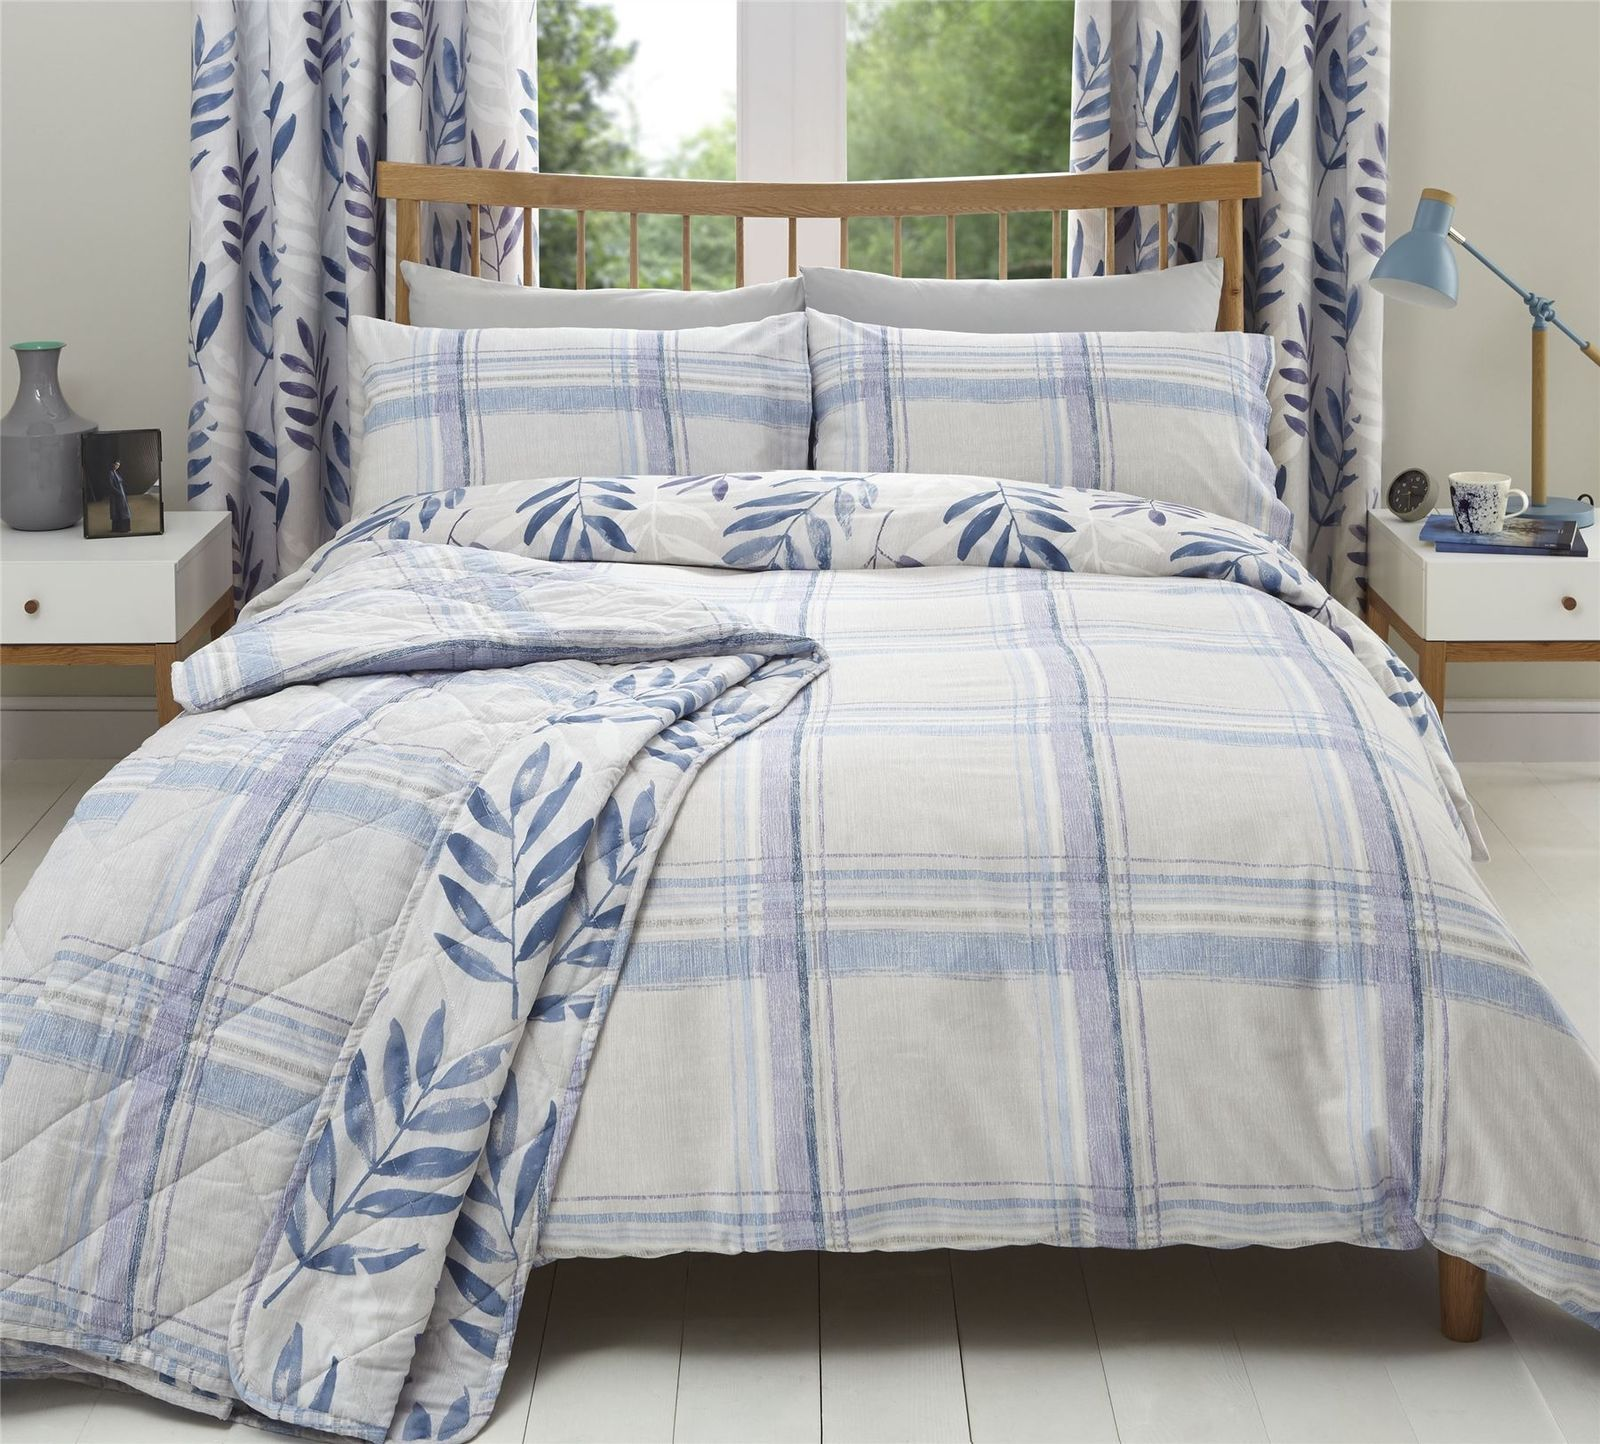 Plaid Anti Poil De Chat brush stroke-style check leaf lilac cotton and 50 similar items